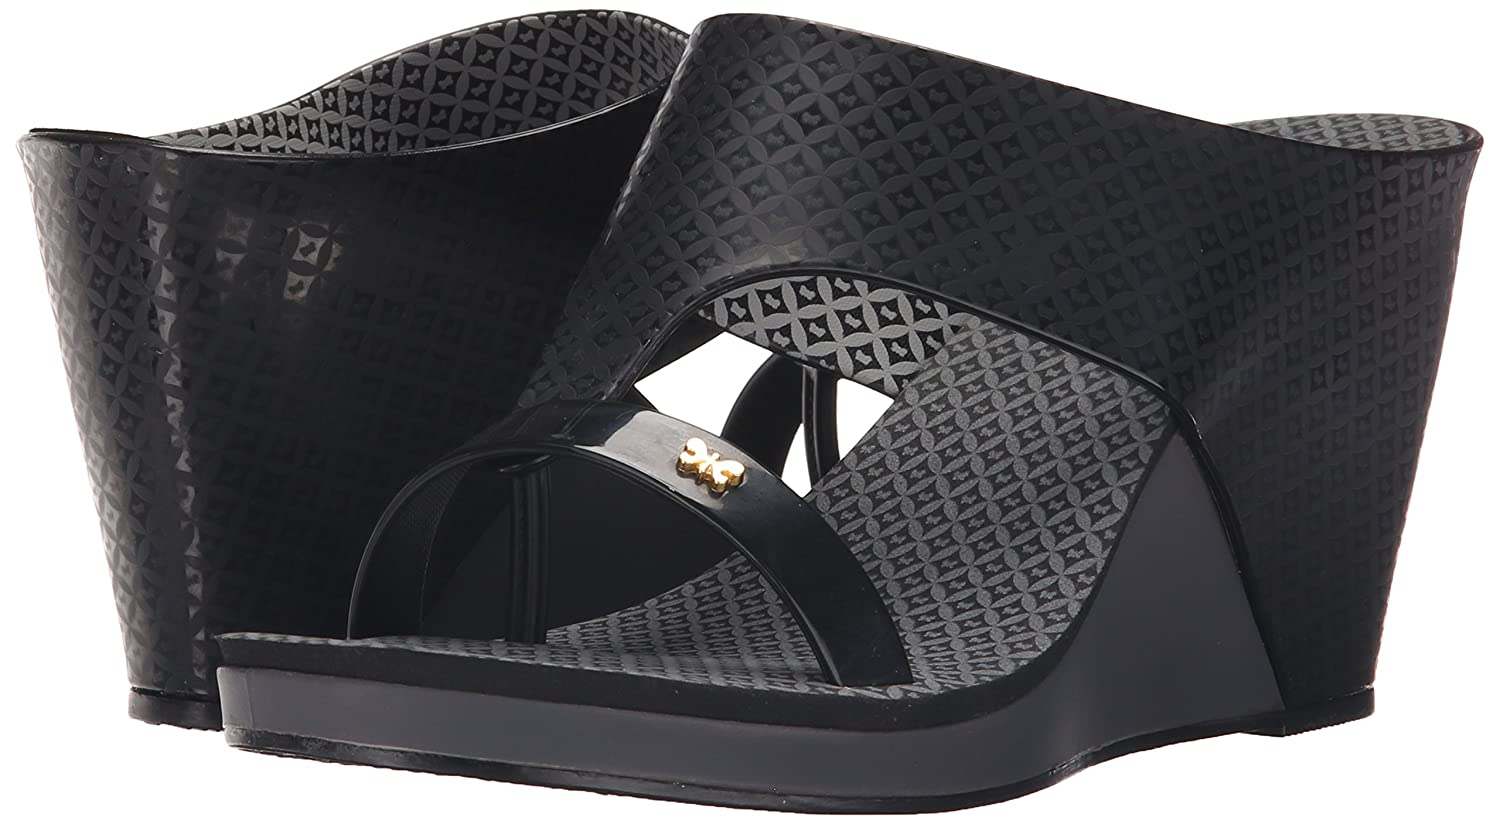 9f76bd0d53 Zaxy Women's Glamour Top II Wedge Sandal, Black, 8 M US: Buy Online at Low  Prices in India - Amazon.in